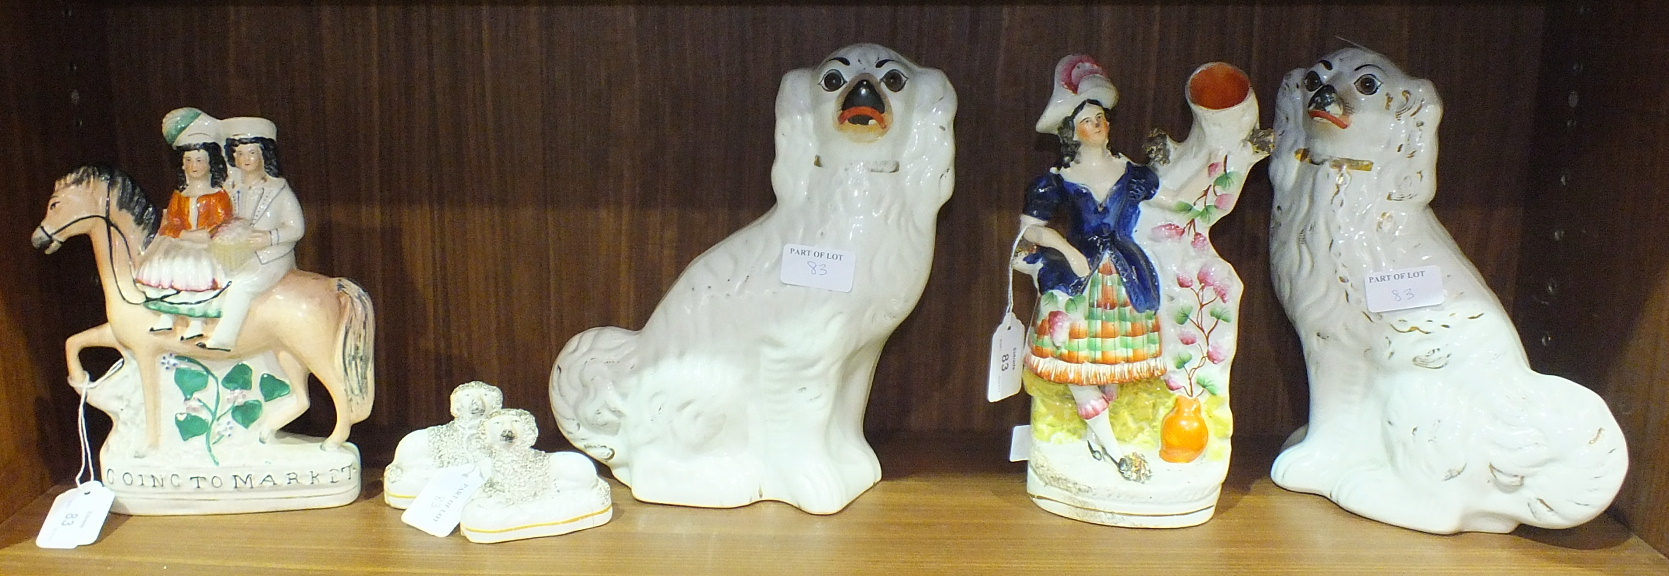 Lot 83 - A Staffordshire flat-back figure 'Going to Market', 21.5cm high, a spill holder in the form of a